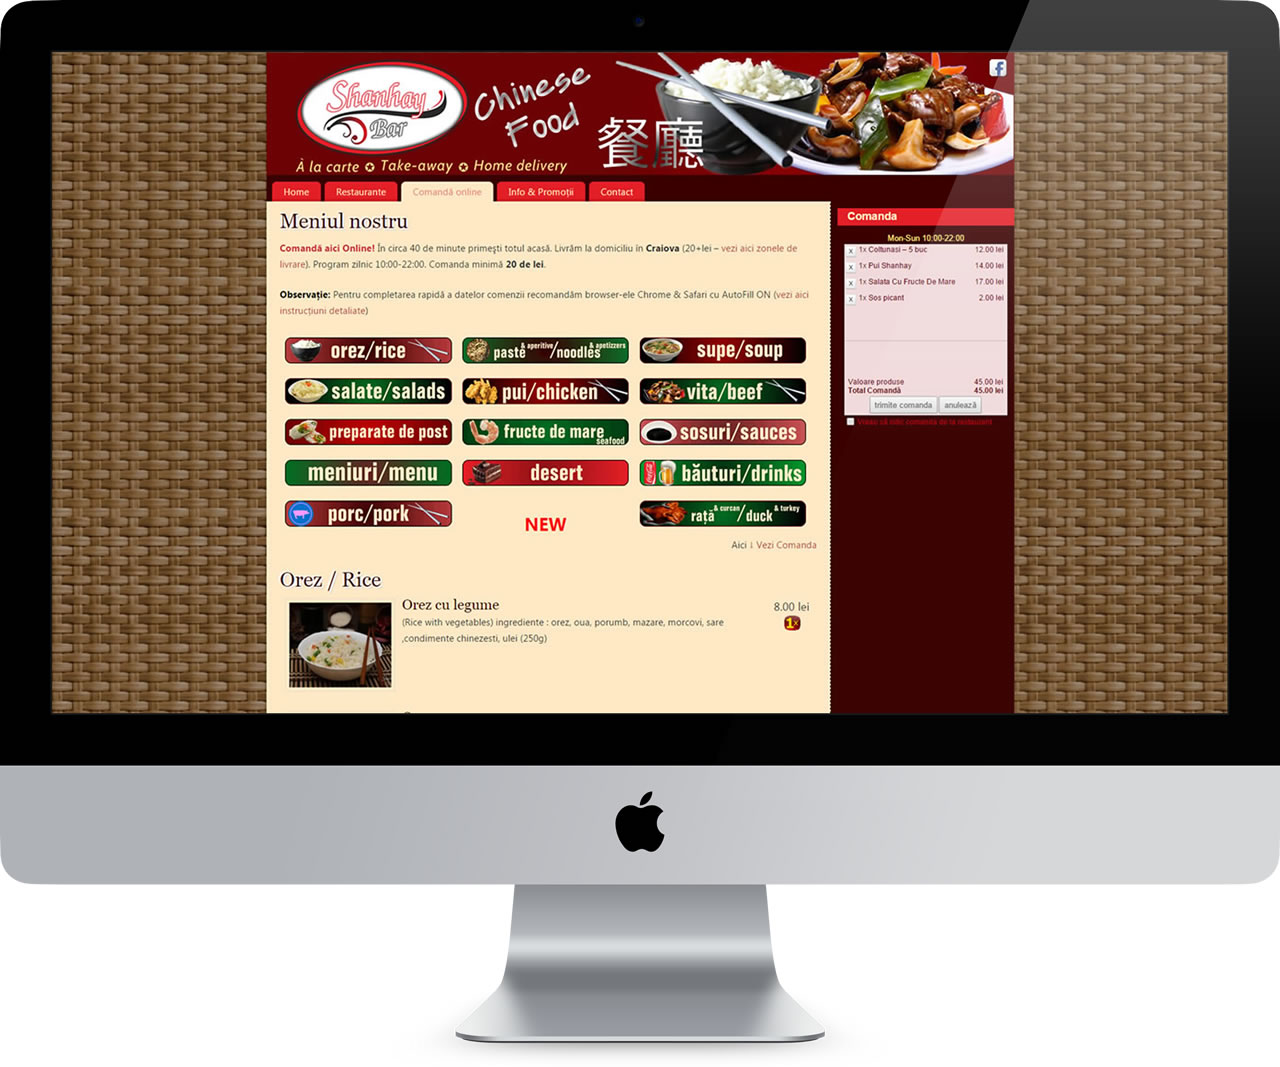 website 027 responsive restaurant chinezesc shanhay bar - livrare domiciliu